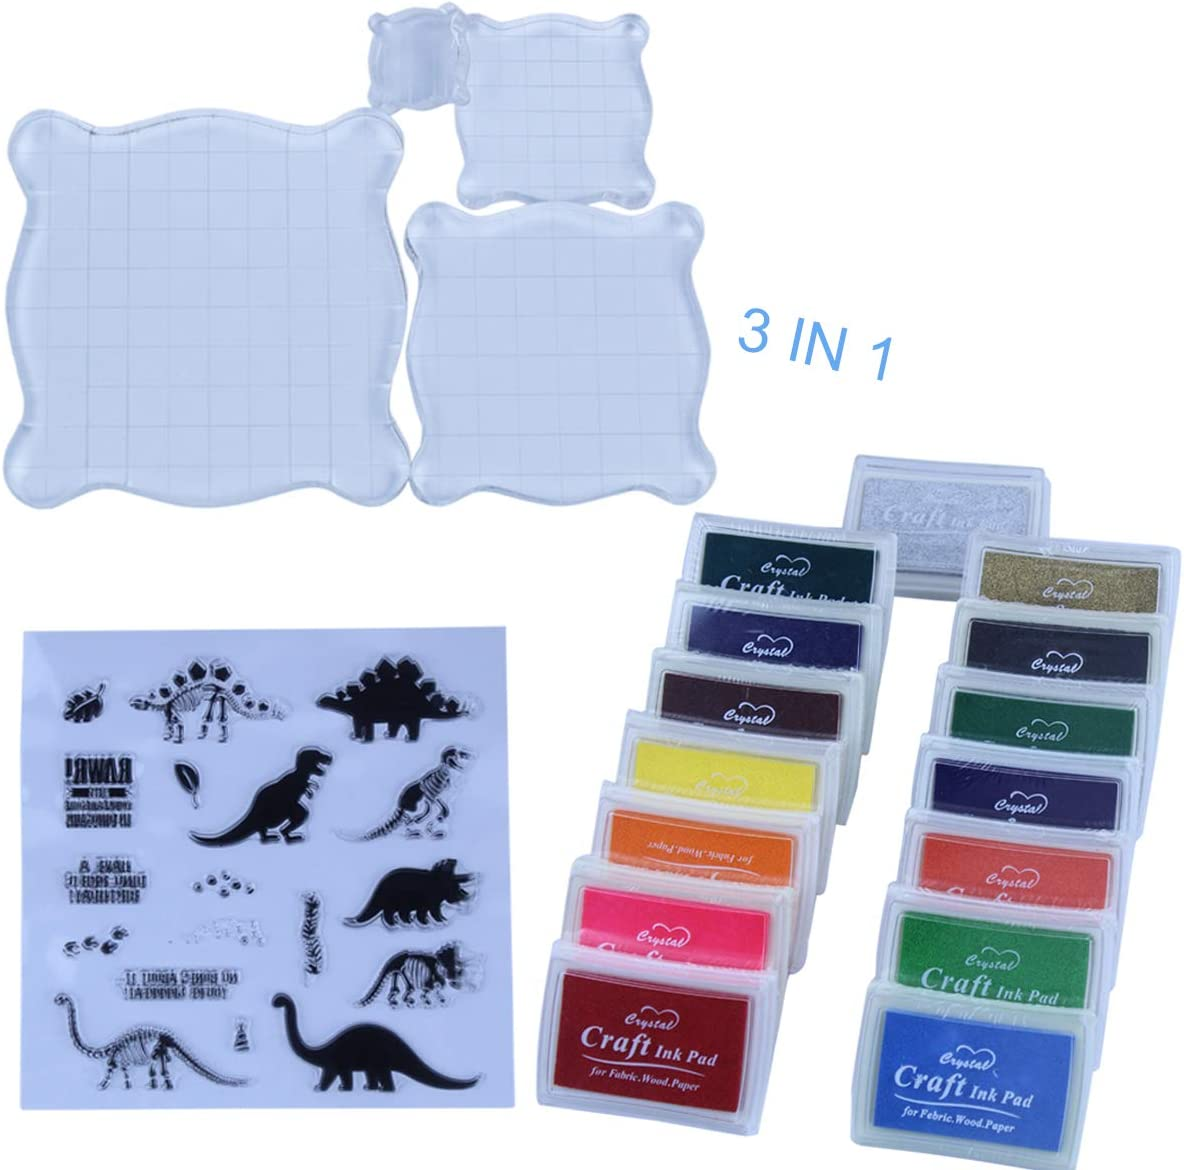 Doteonhome 3 In 1 DIY Stamping Set Contain 4pcs Stamp Blocks,15 Colors Craft Ink Pad,1 Dinosaur Pattern Silicone Clear Stamps